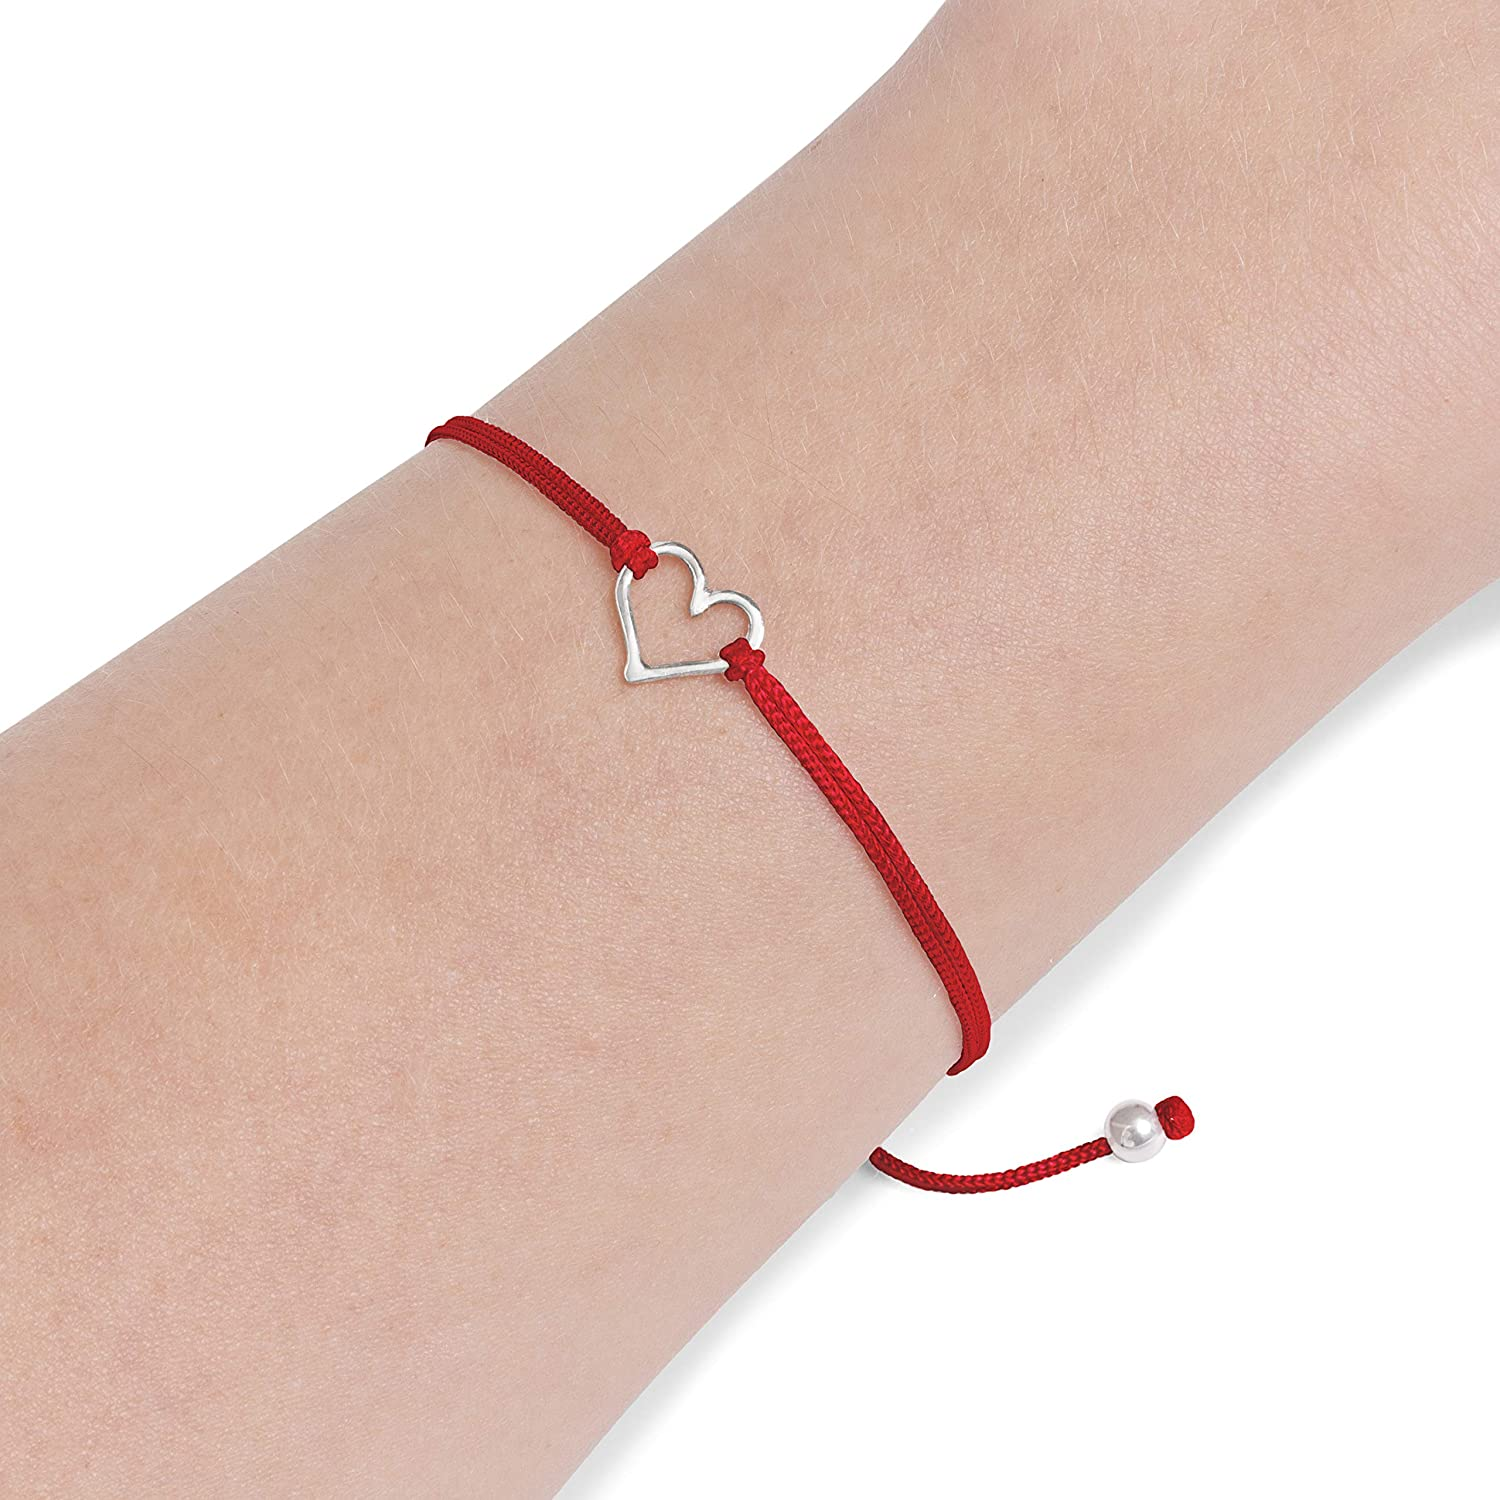 Lucky red cord Tiny silver heart charm Christmas gift for her Friendship bracelet Tiny little heart on holiday card Adjustable bracelet